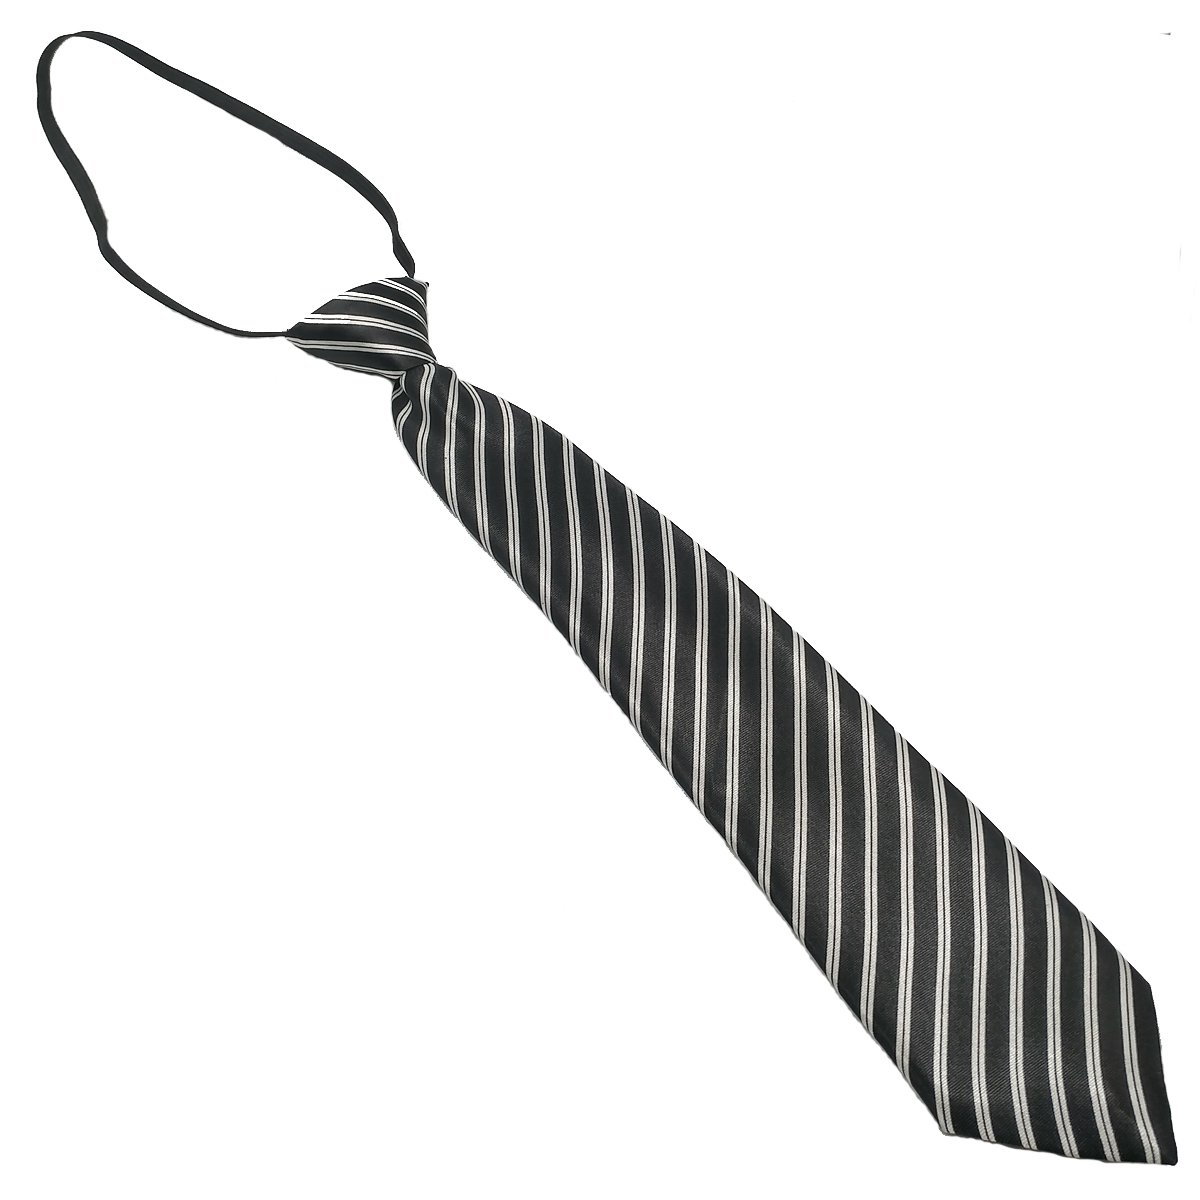 KIDS NECKTIE Selections for Boys/Girls/Toddlers in Fashion Design - PRETIED w/ Elastic Band Novelty Designer Neck Tie for Tuxedo / Dress Up